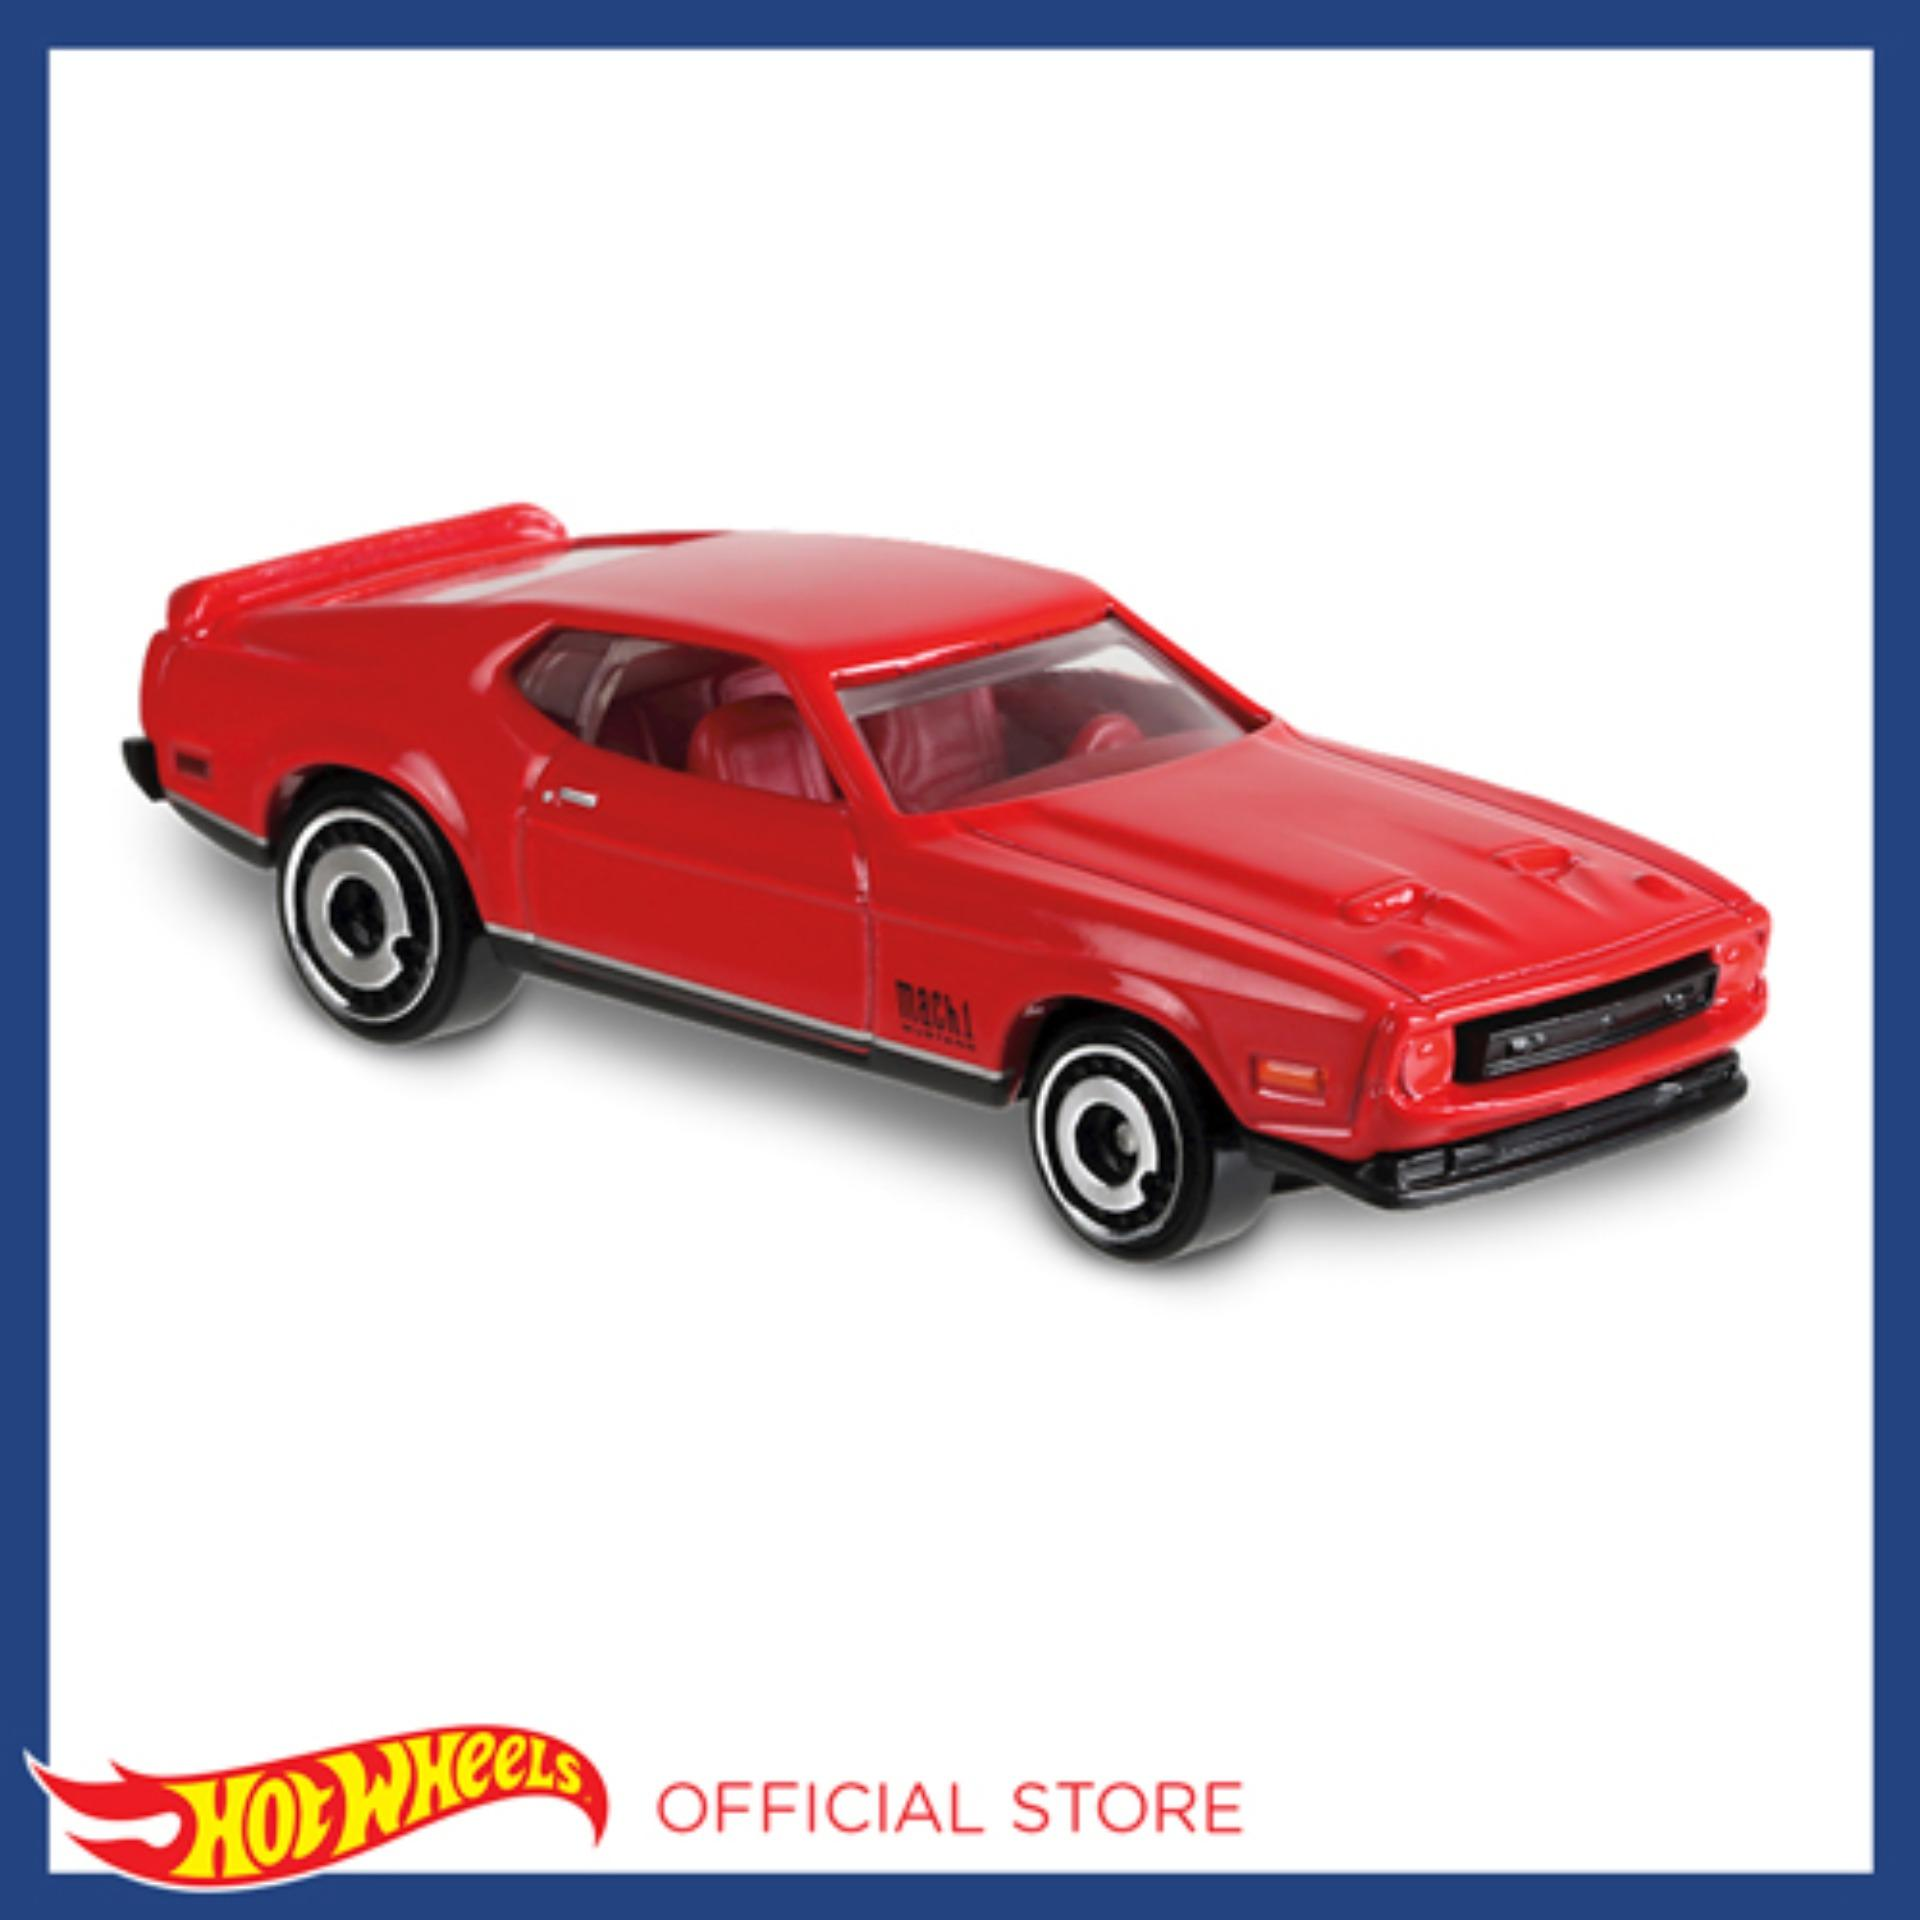 Hot Wheels Philippines Price List Scooter Cars Hotwheels Datsun 620 Red Basic Car 164 Scale Dc A 71 Mustang Mach 1